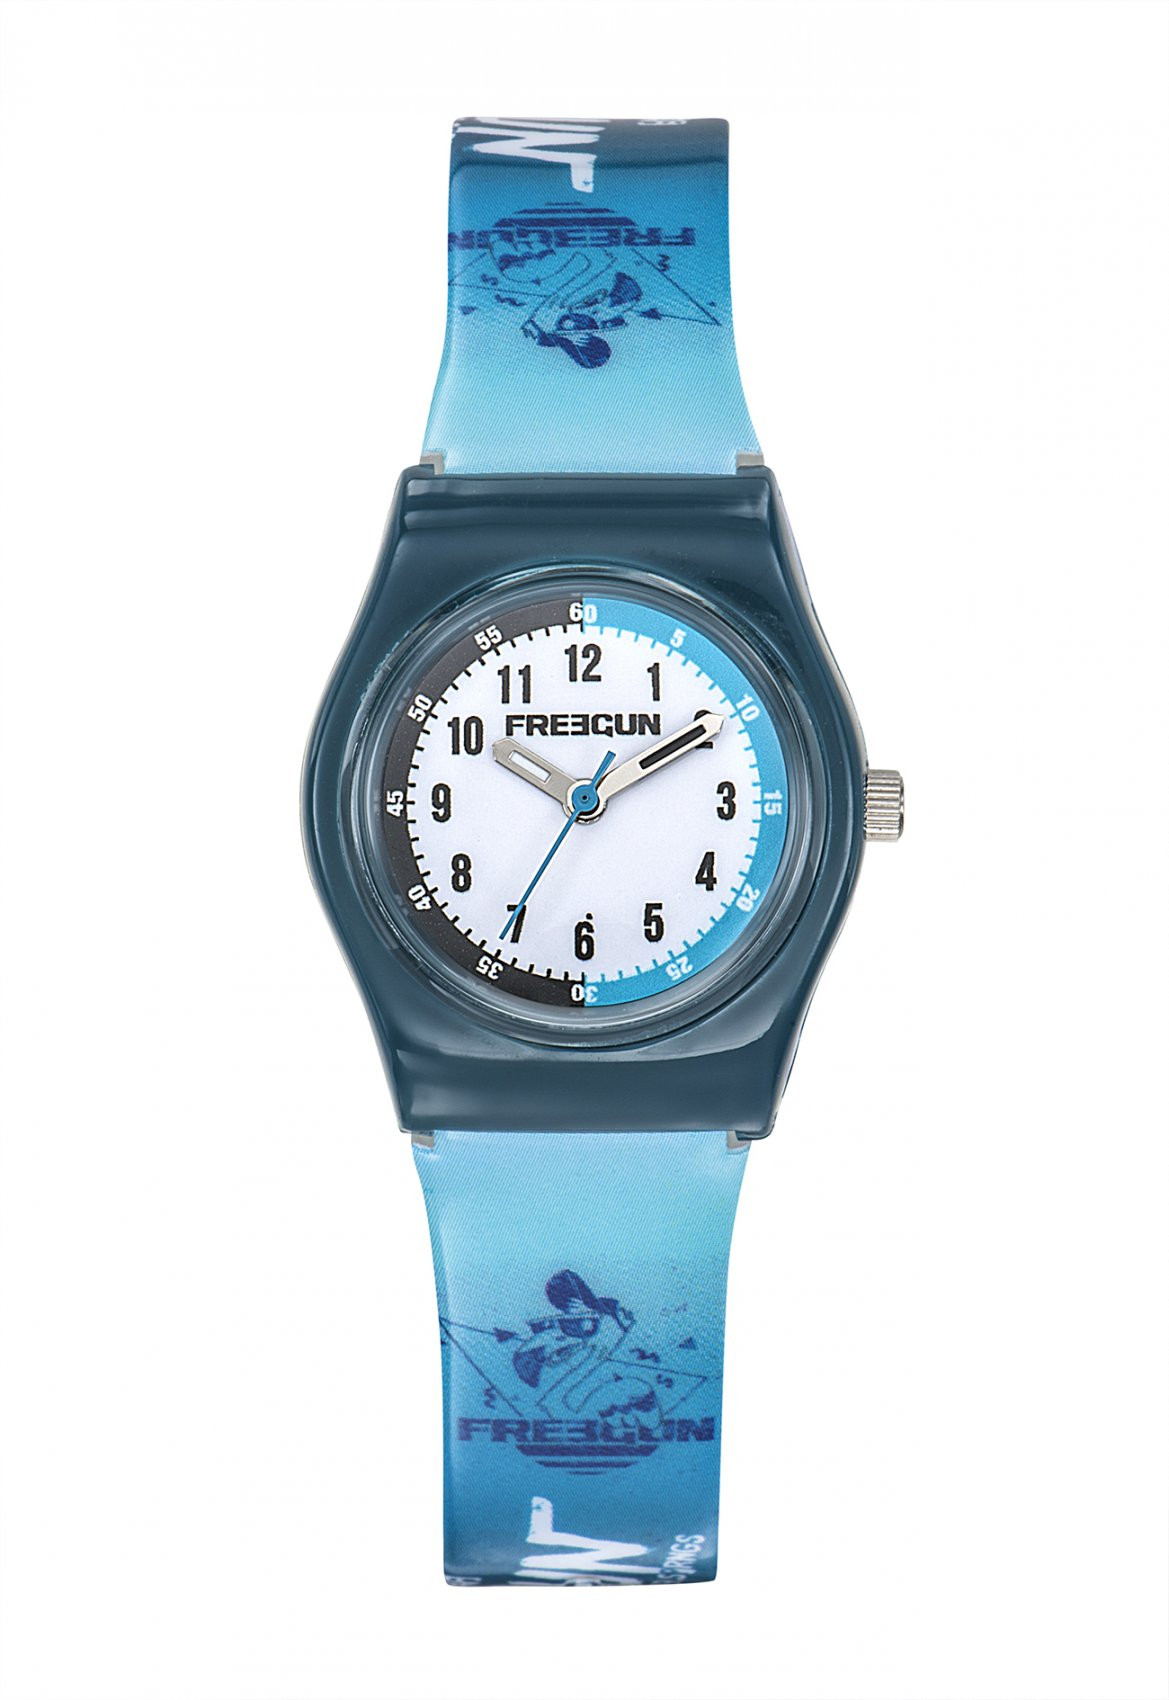 Montre street ocean freegun (photo)